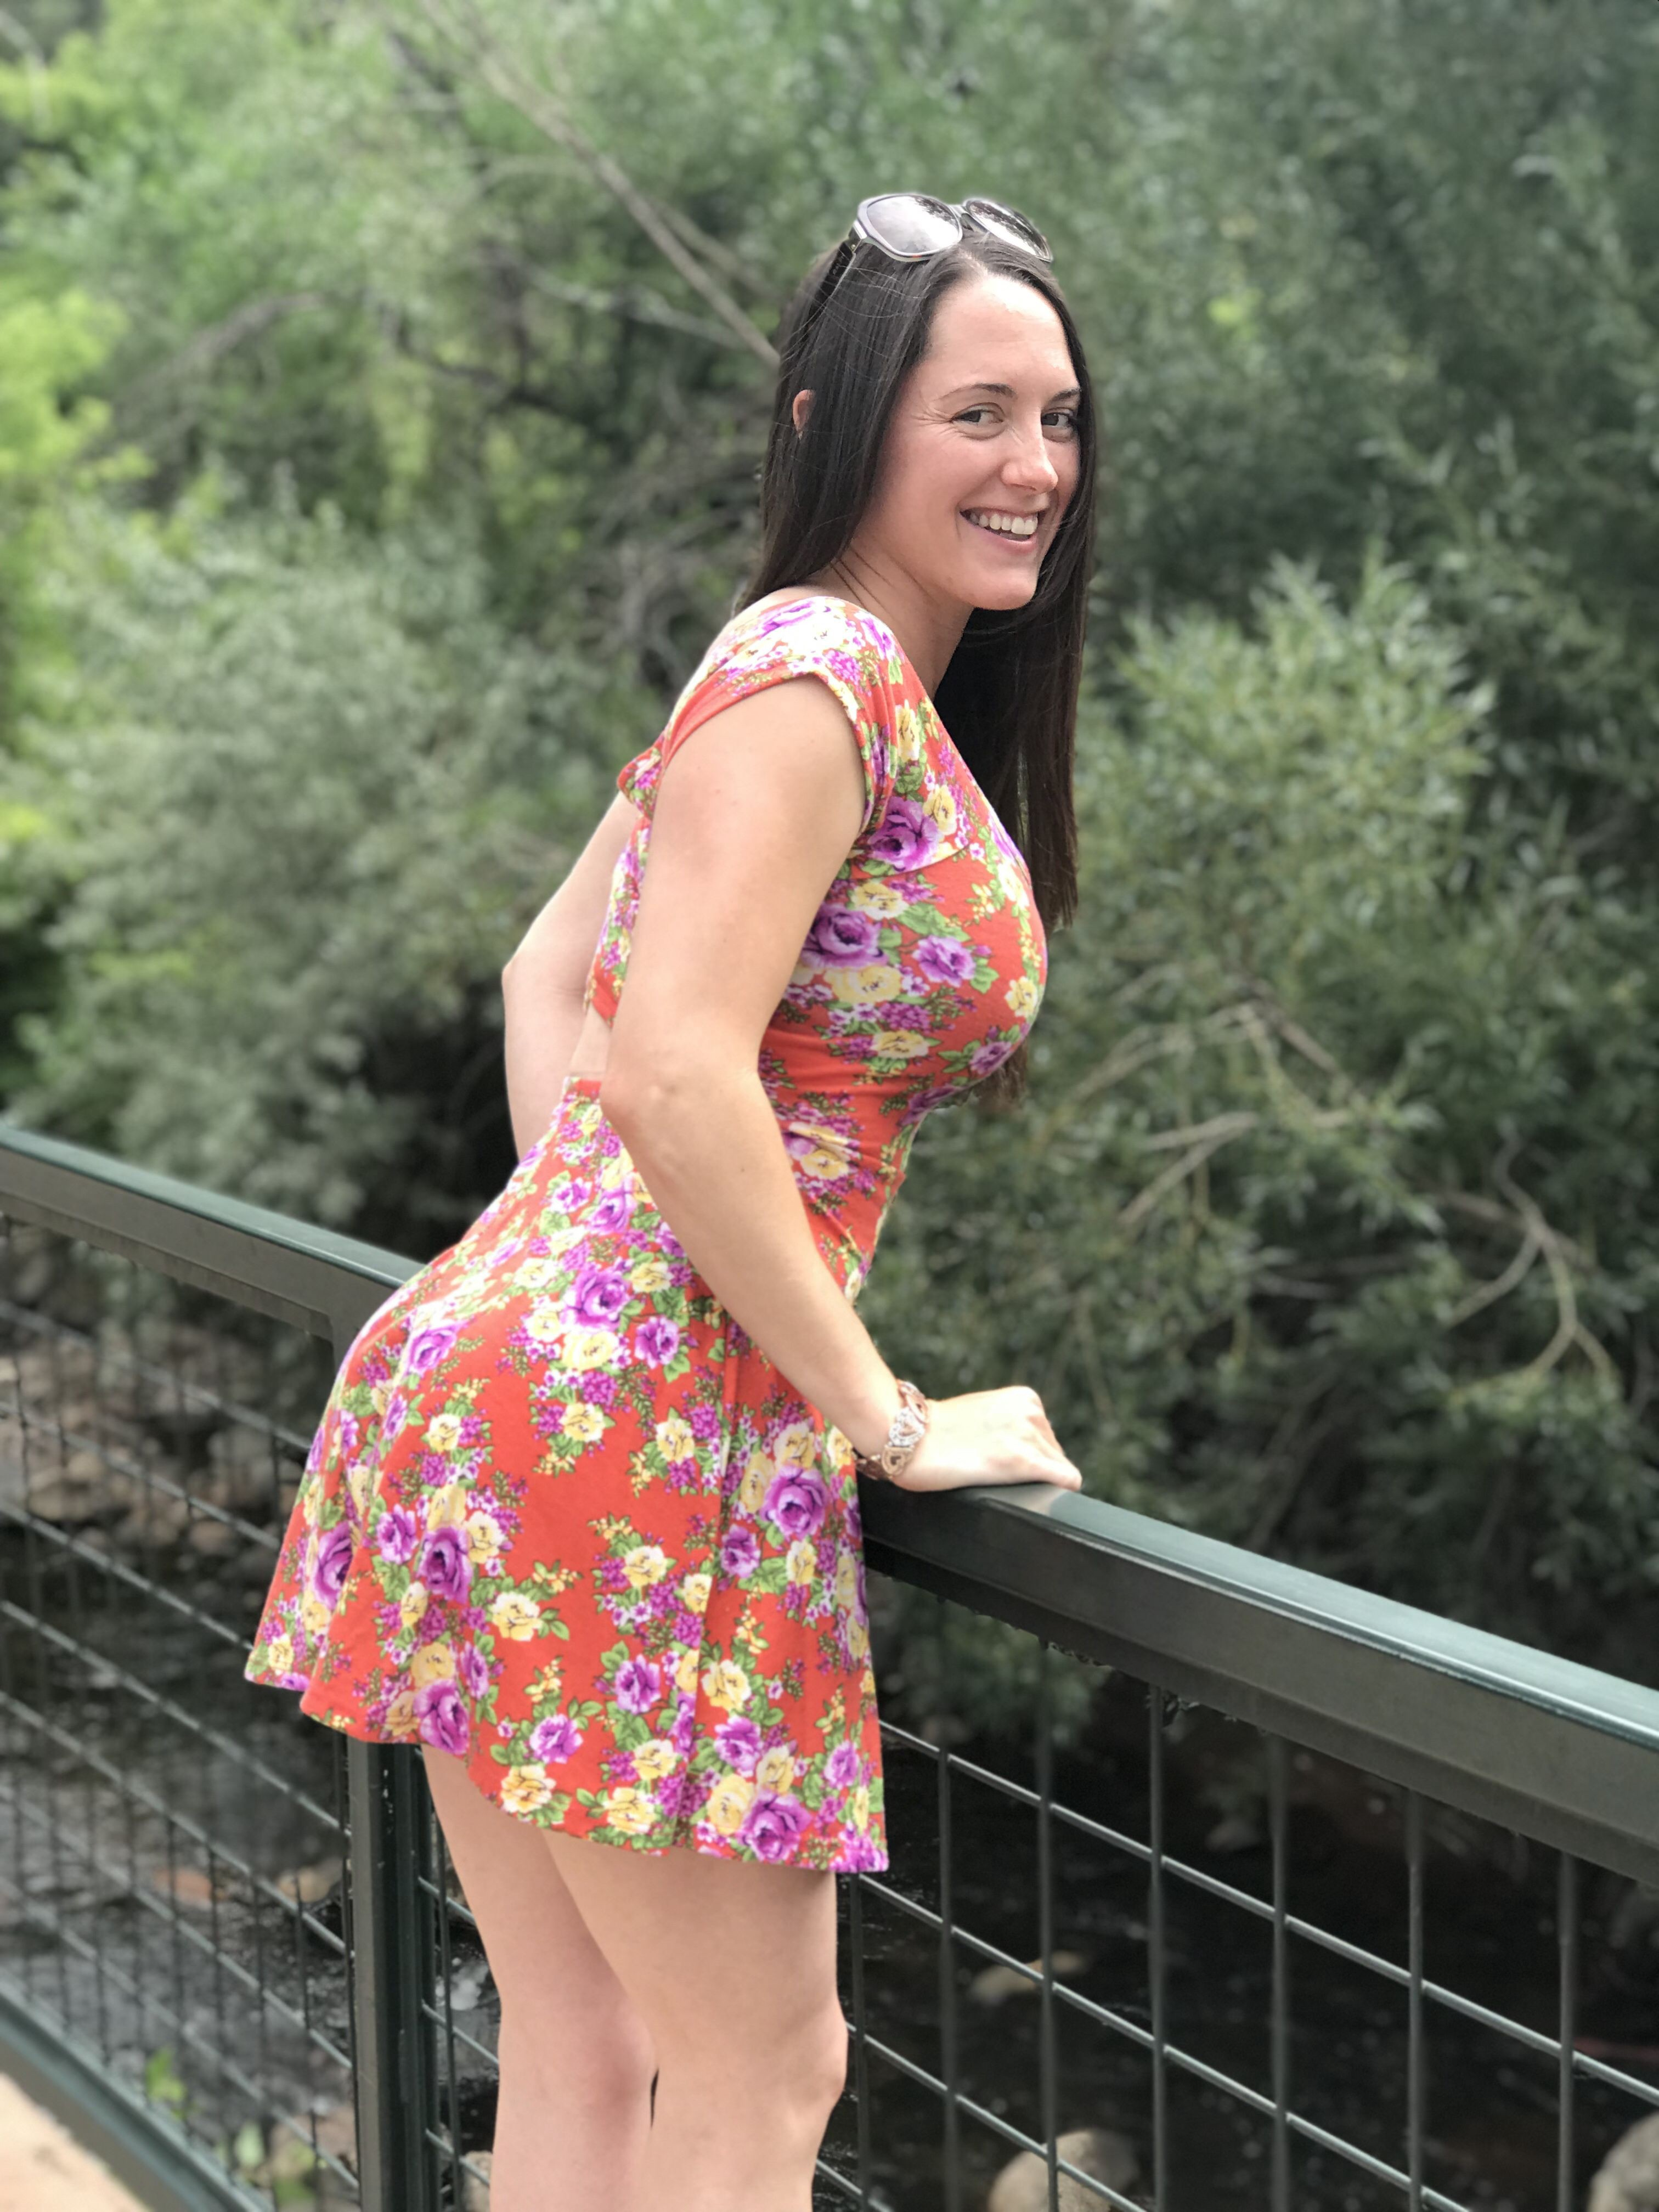 Chris Watts Mistress Photos, Names Published: Affair with